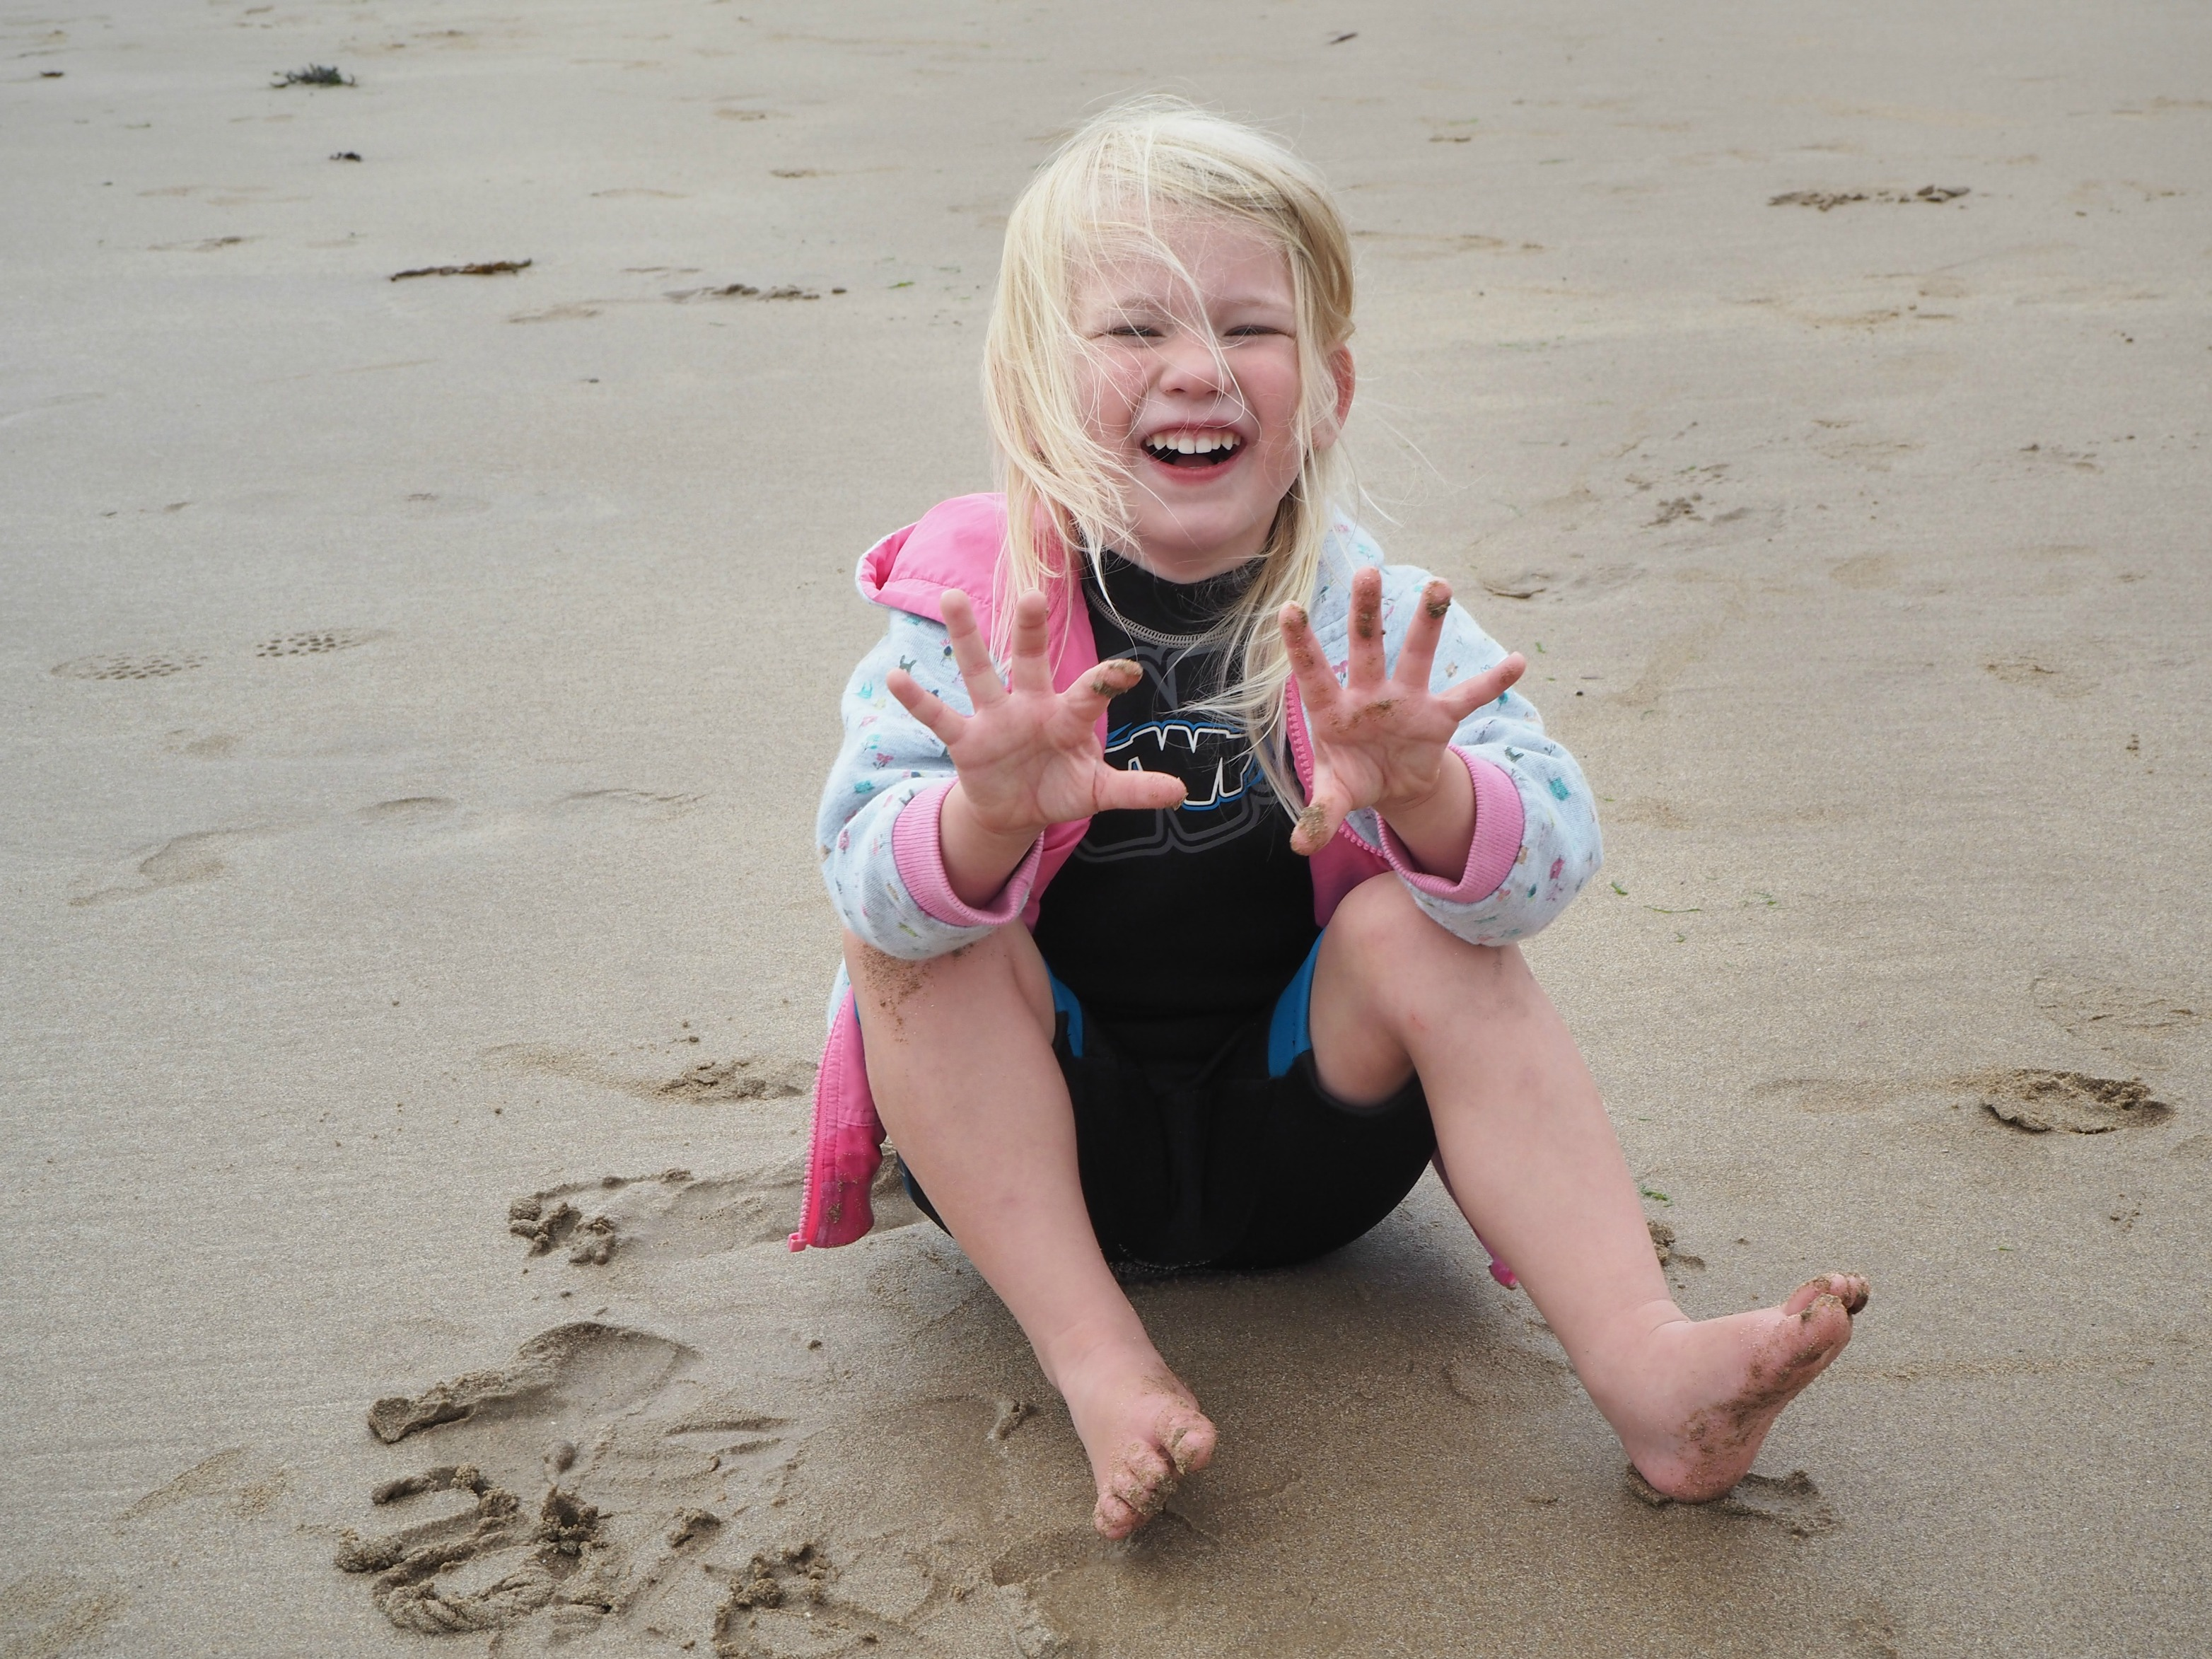 Our Welsh Holiday Highlights - Summer 2018 - Aria sandy hands